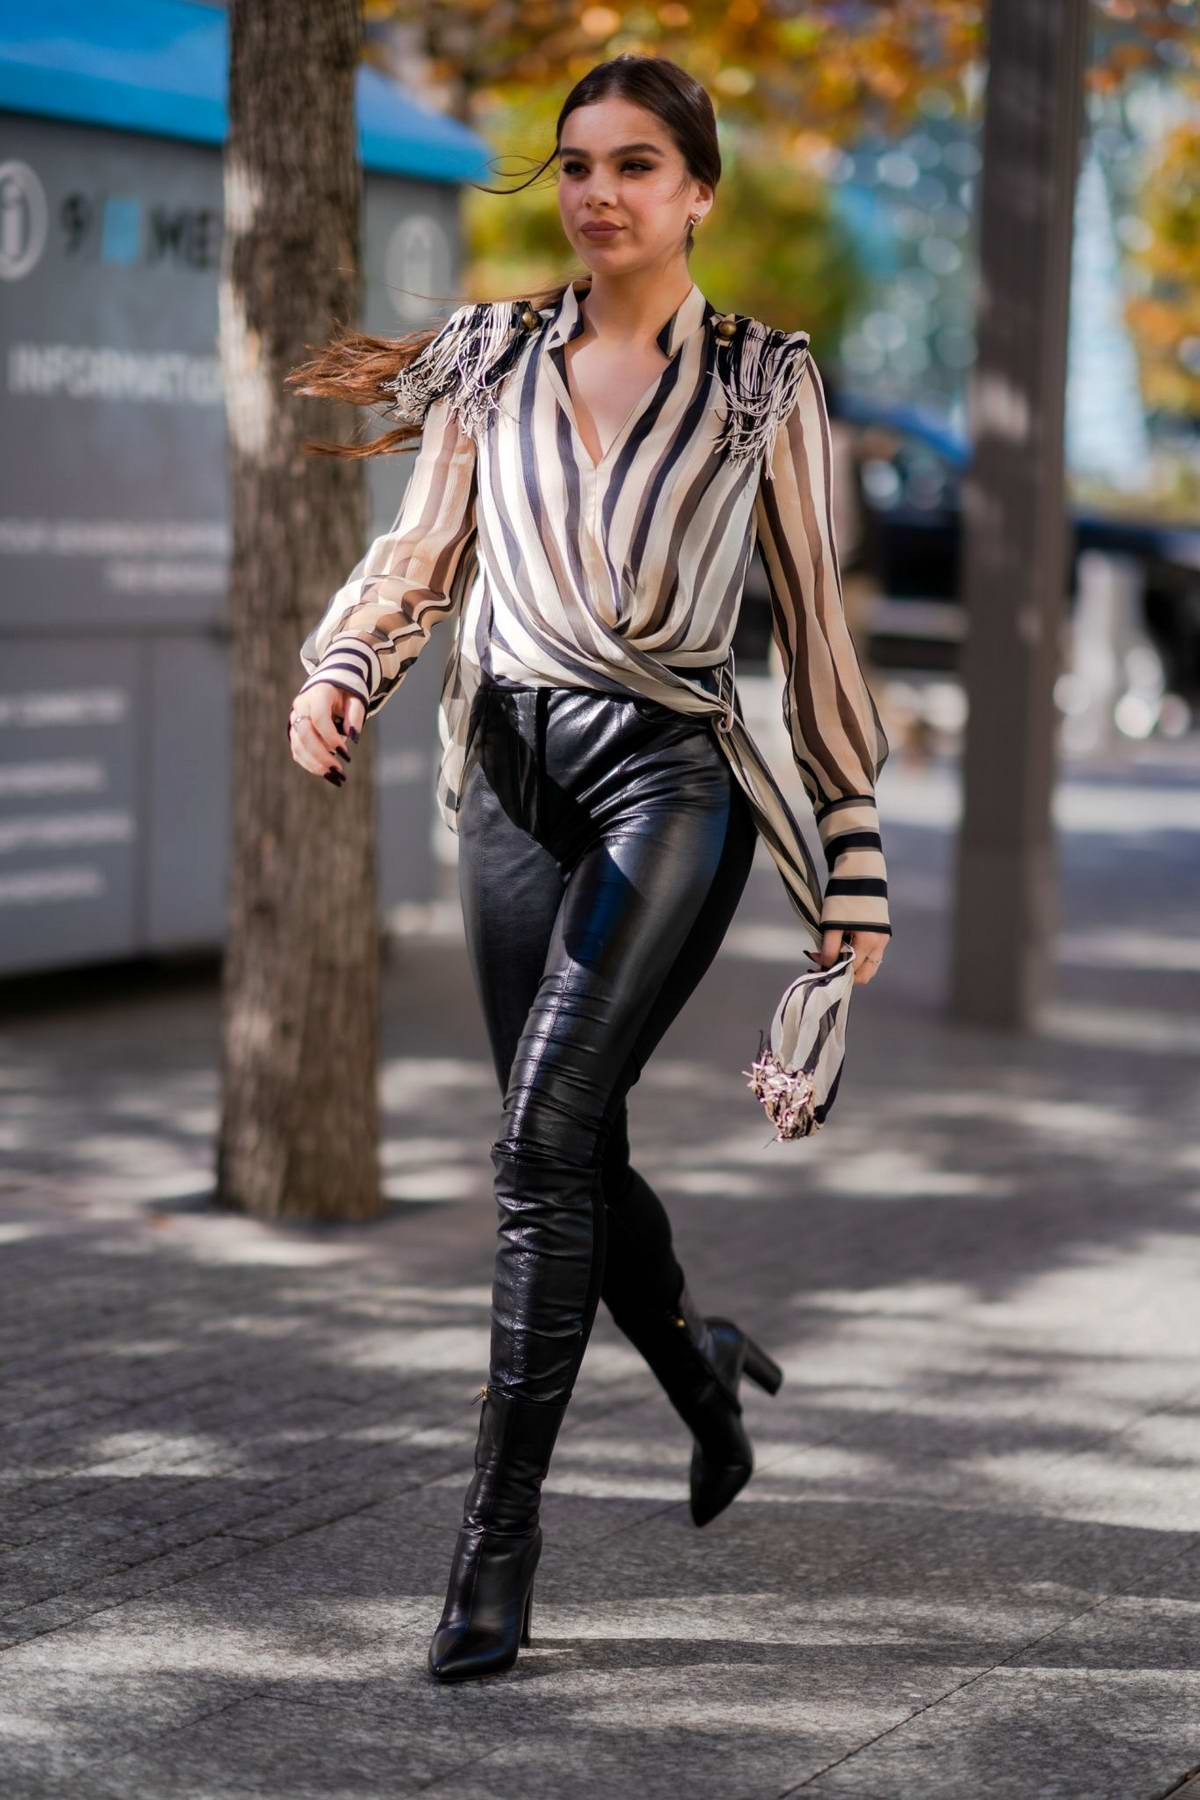 Hailee Steinfeld looks stylish in a striped wrap shirt paired with black leather pants as she steps out in Tribeca, New York City